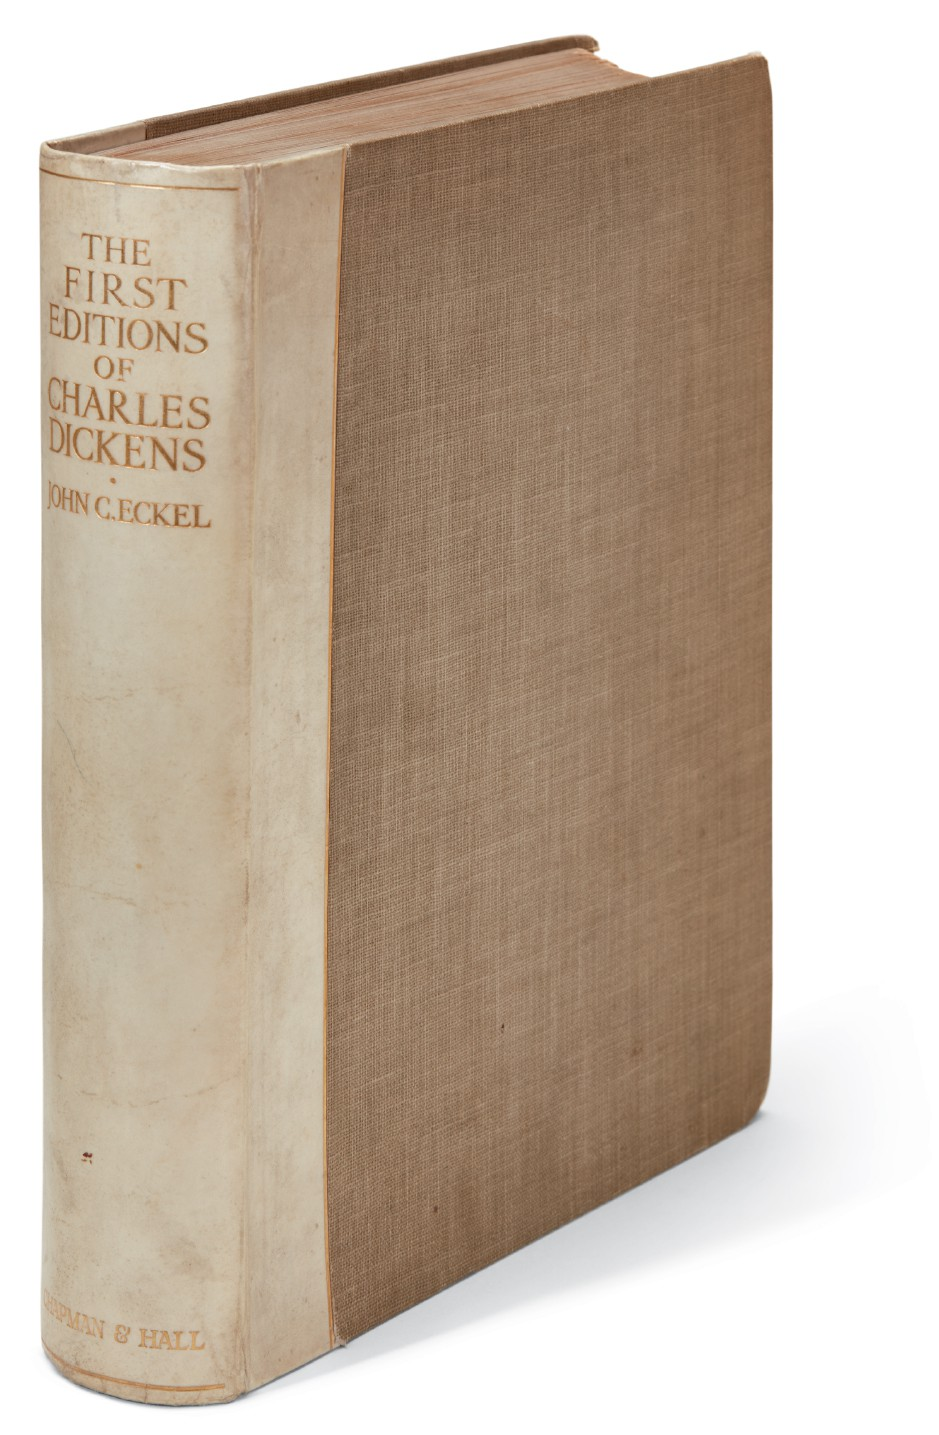 Lot 242 Eckel, First Editions of Charles Dickens, 1913, number 21 of 250